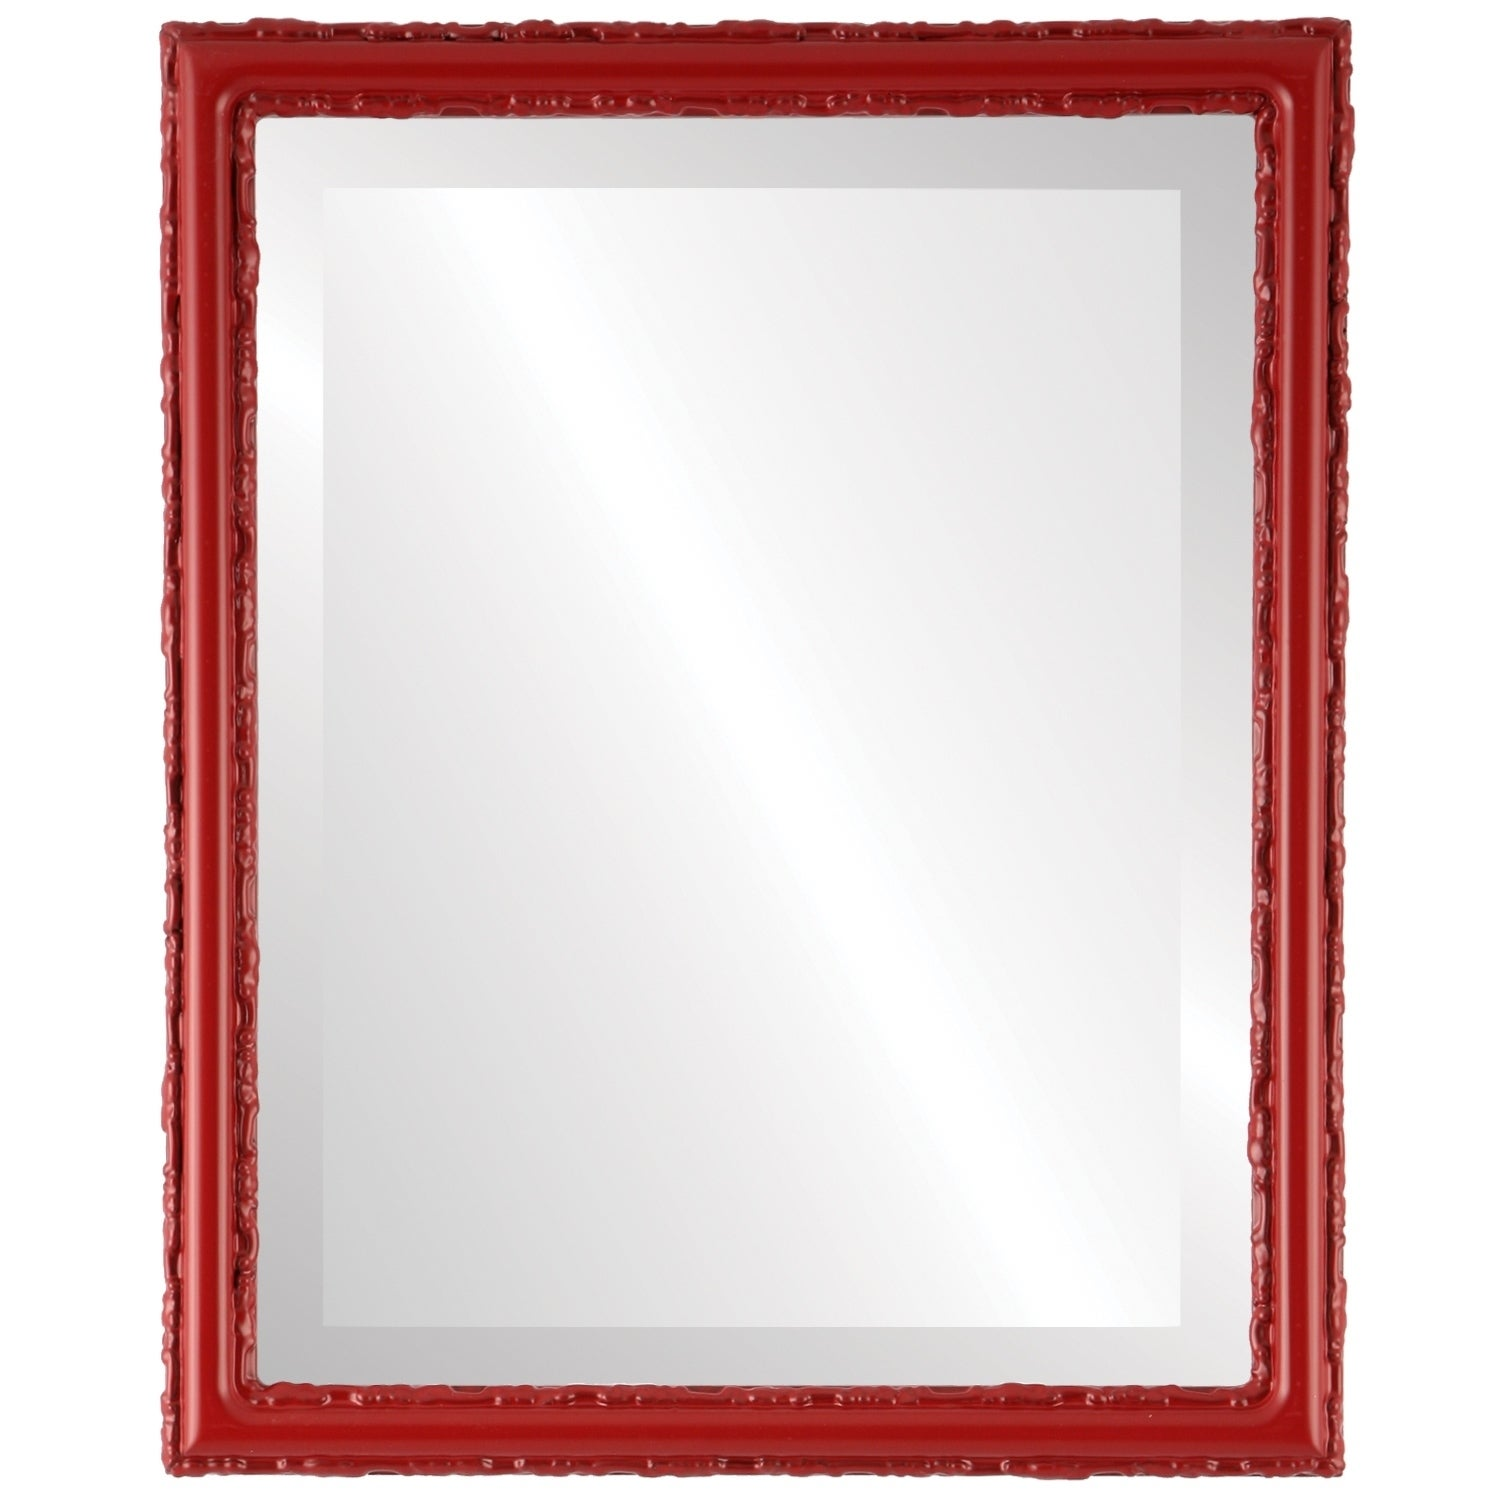 Virginia Framed Rectangle Mirror in Holiday Red (13x17)